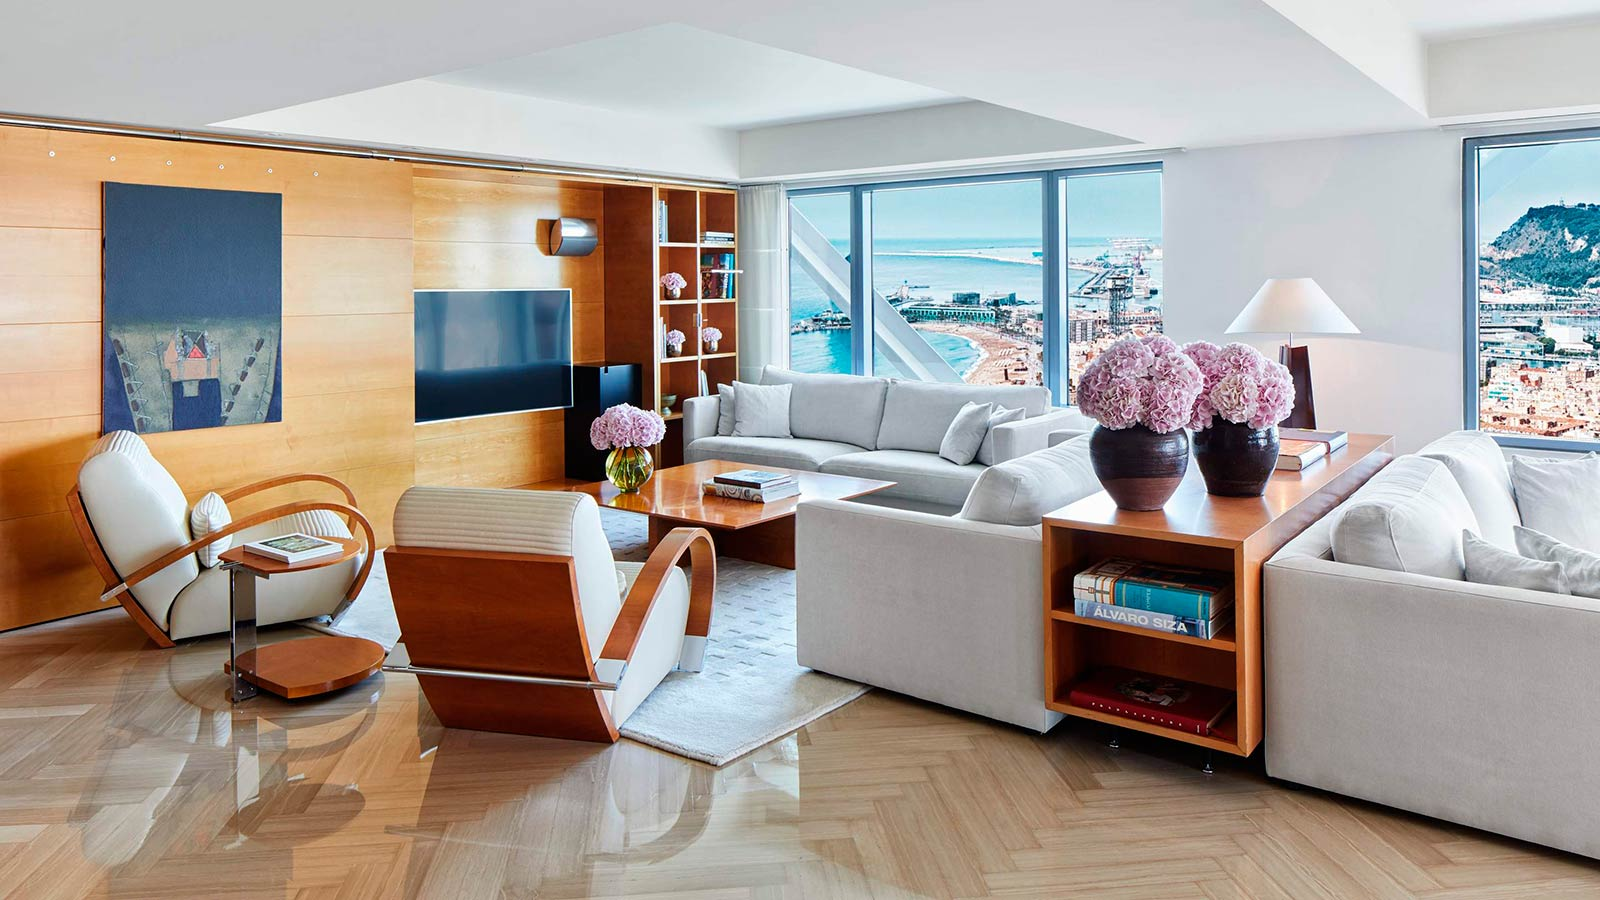 3 bedrooms Penthouse – Sitting area